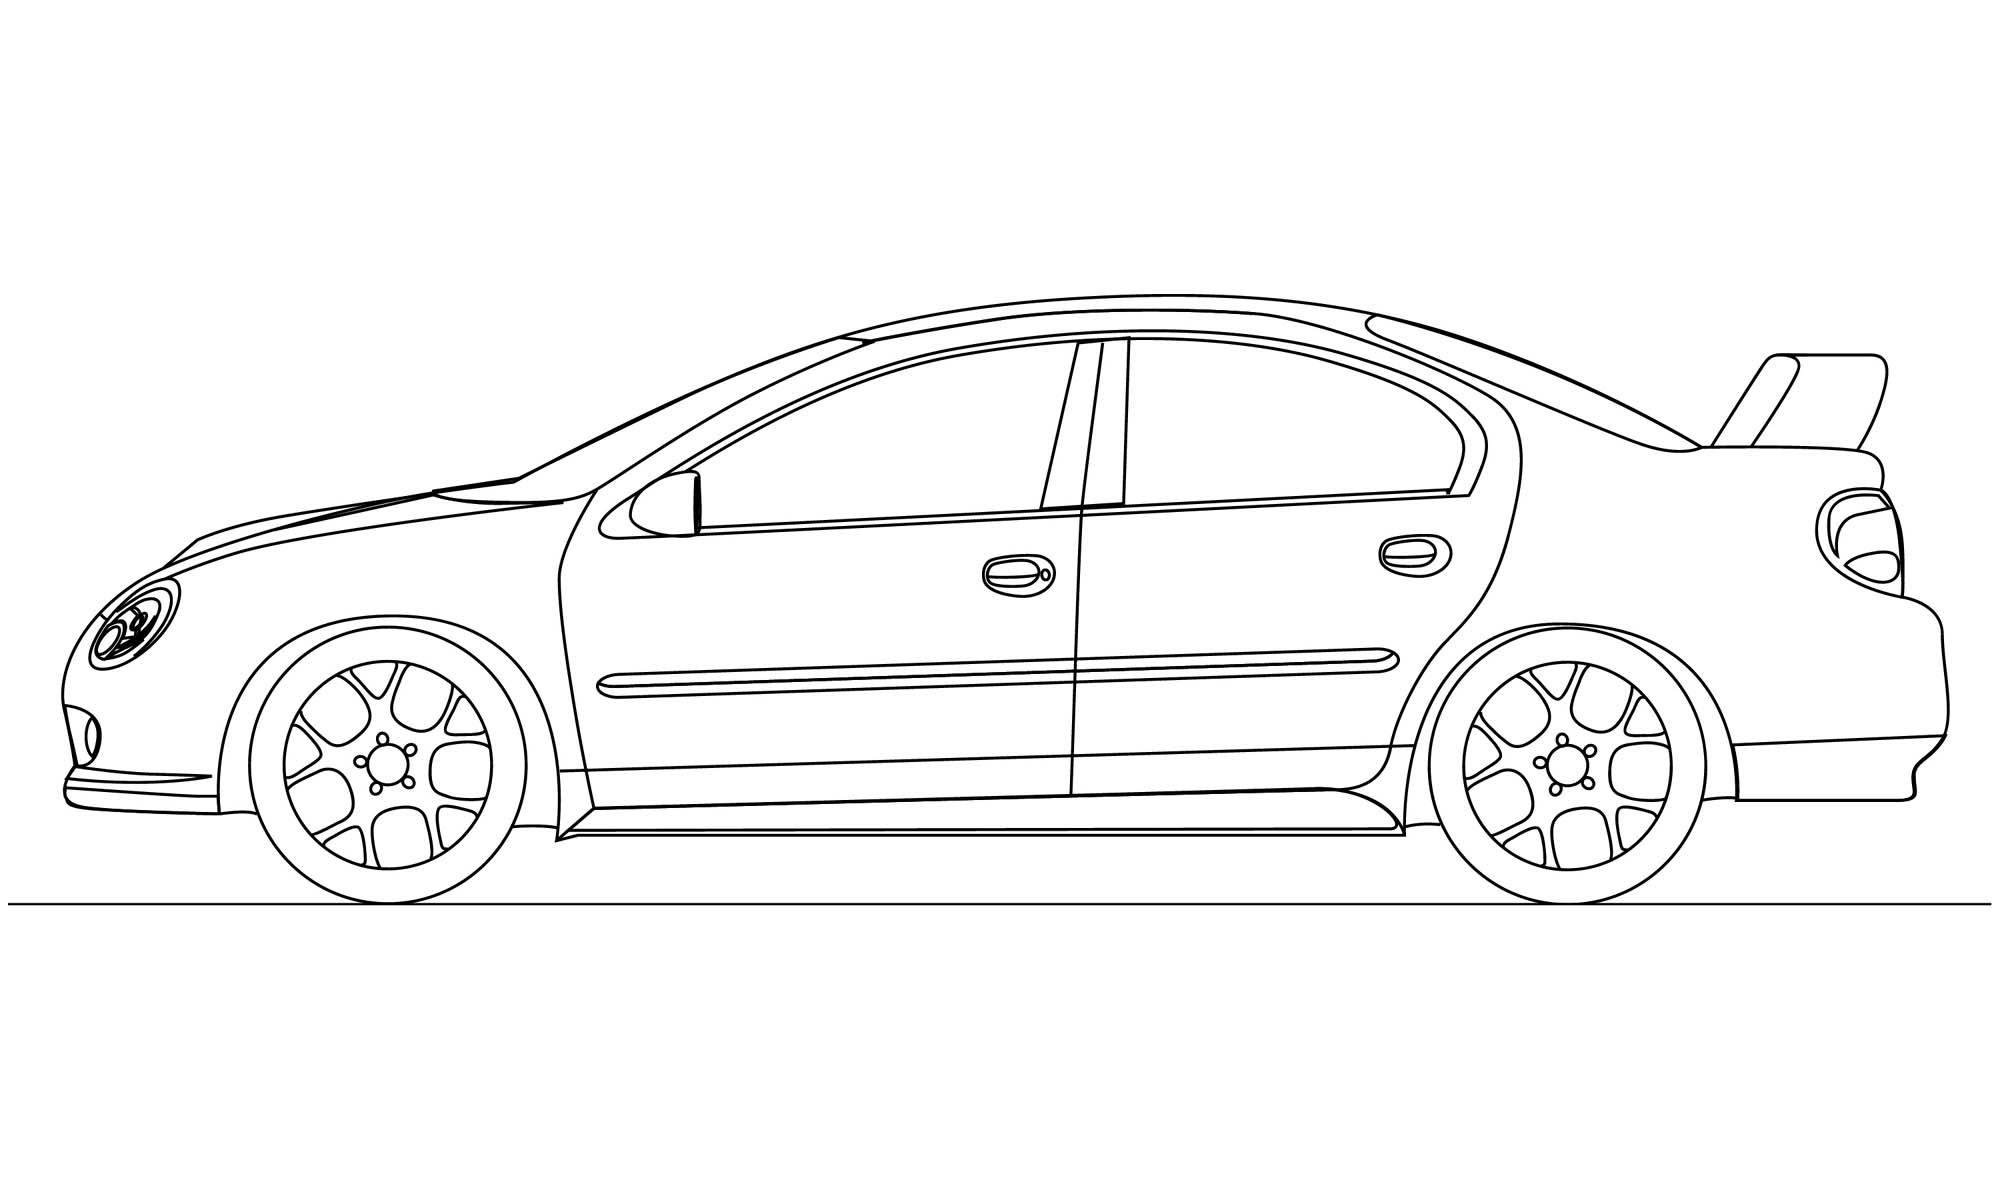 car sketch for coloring car drawing on wallpapergetcom for car sketch coloring